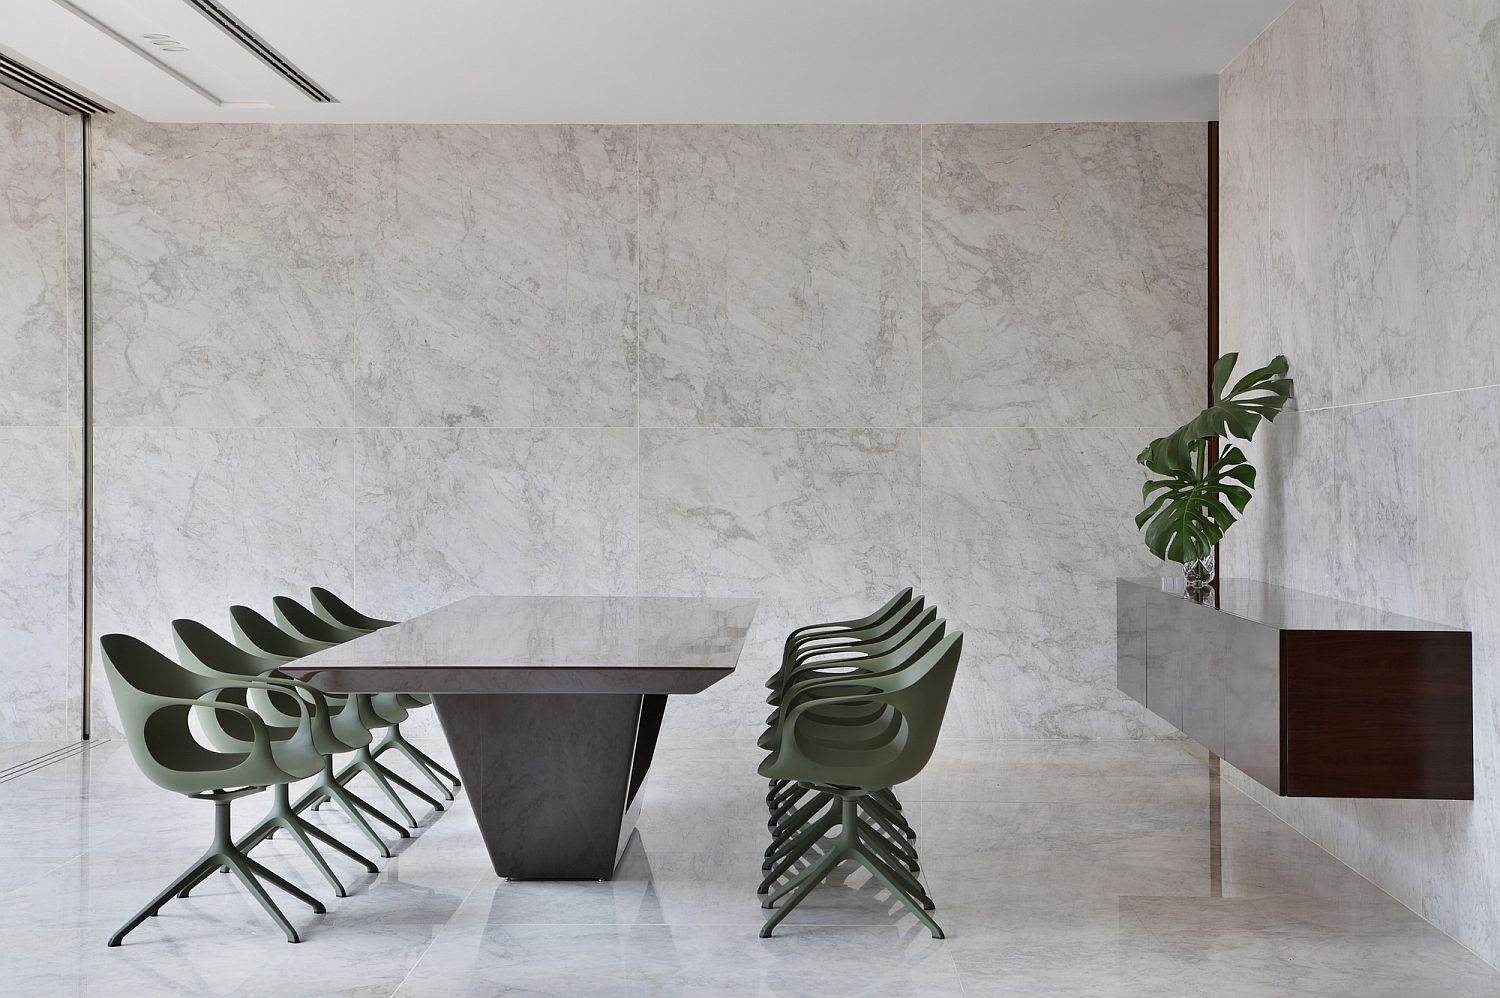 Contemporary minimal dining area with chairs in light pastel green